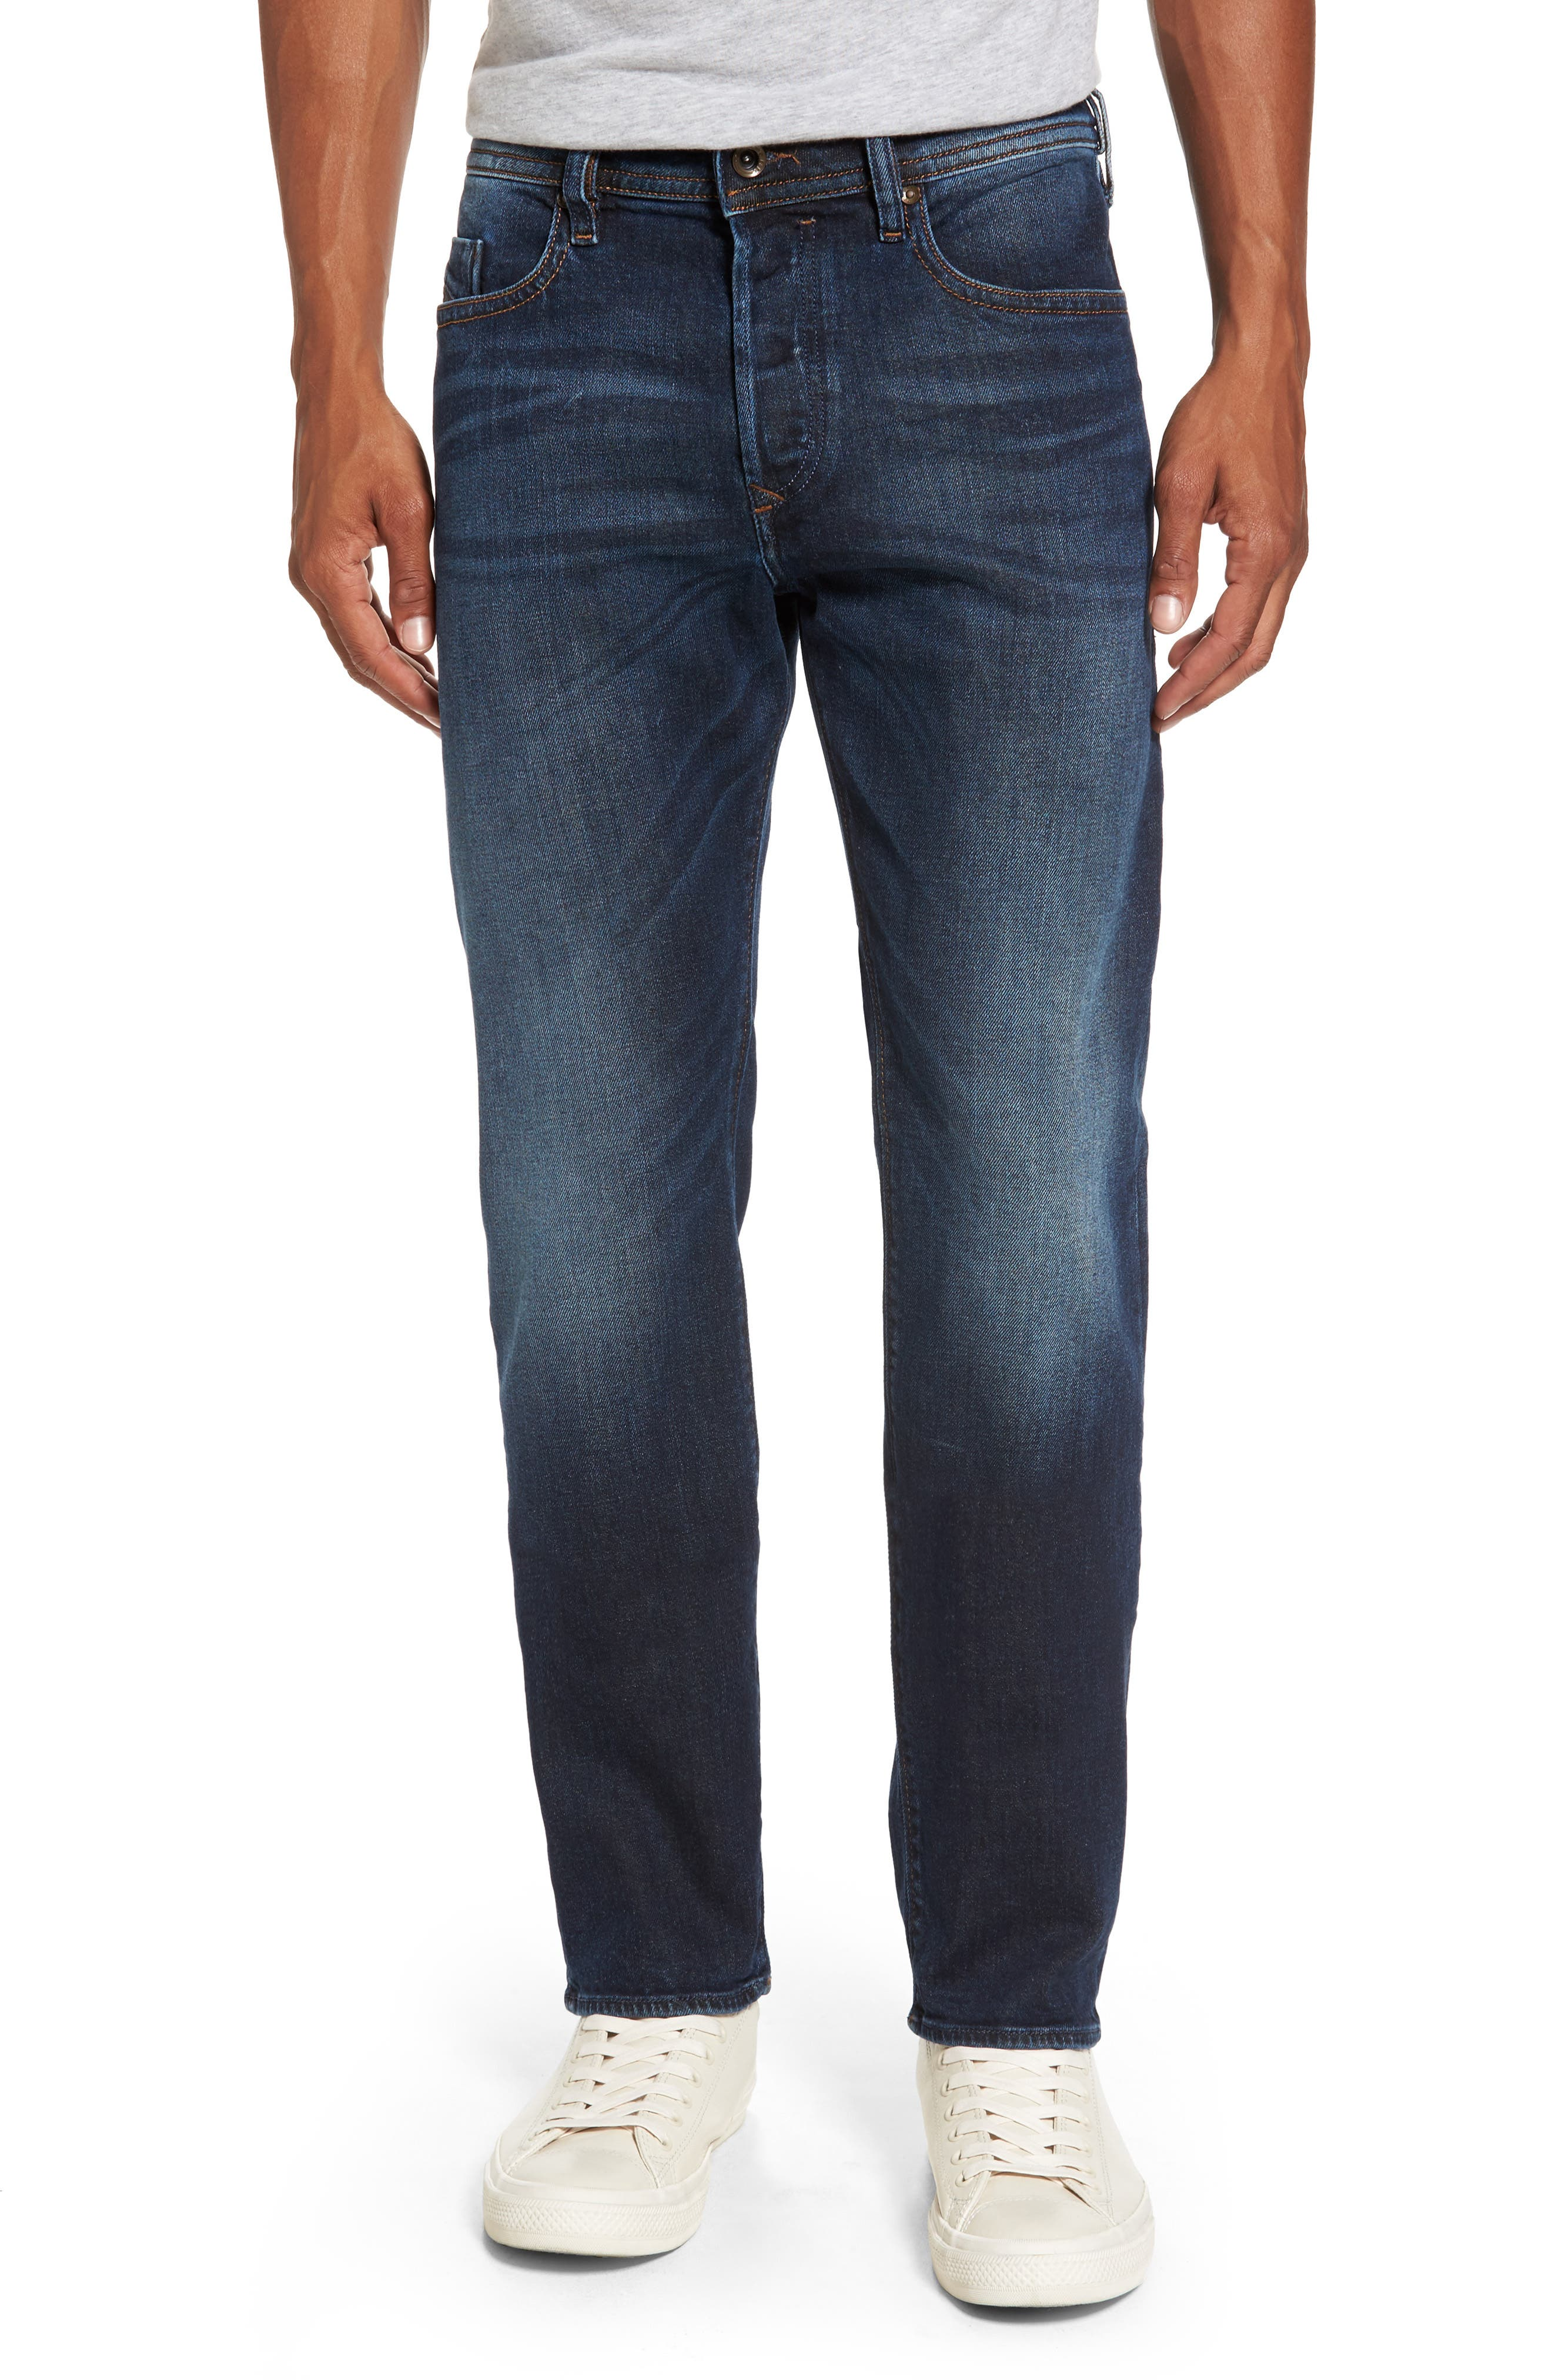 Buster Slim Straight Leg Jeans,                         Main,                         color, 400